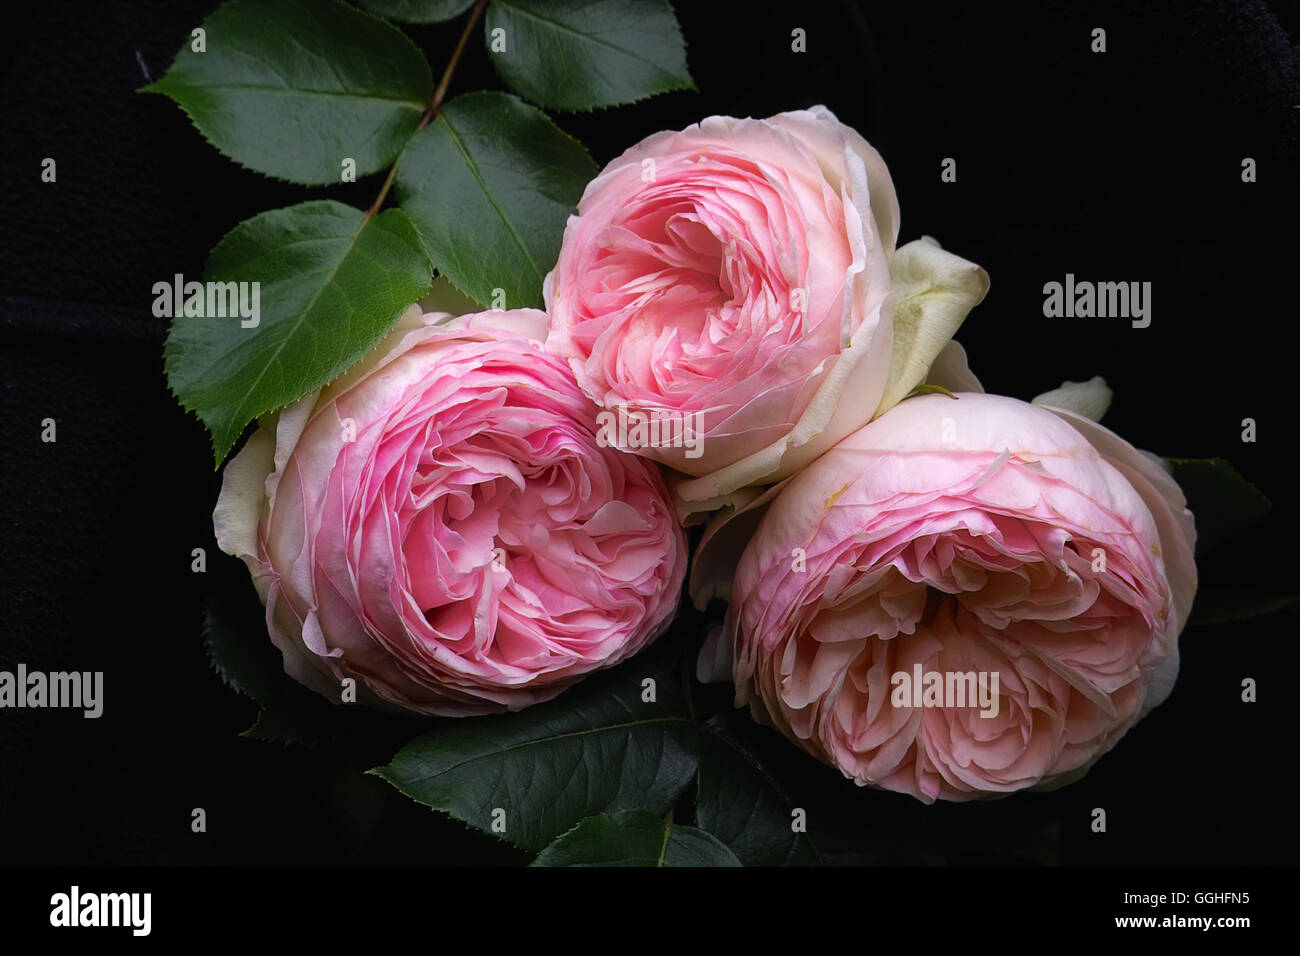 Pink double Rose / Gefüllte rosa Rose 'Eden Rose' double, Eden Rose, rose,  double flowered, double, roses, pink rose, antique,